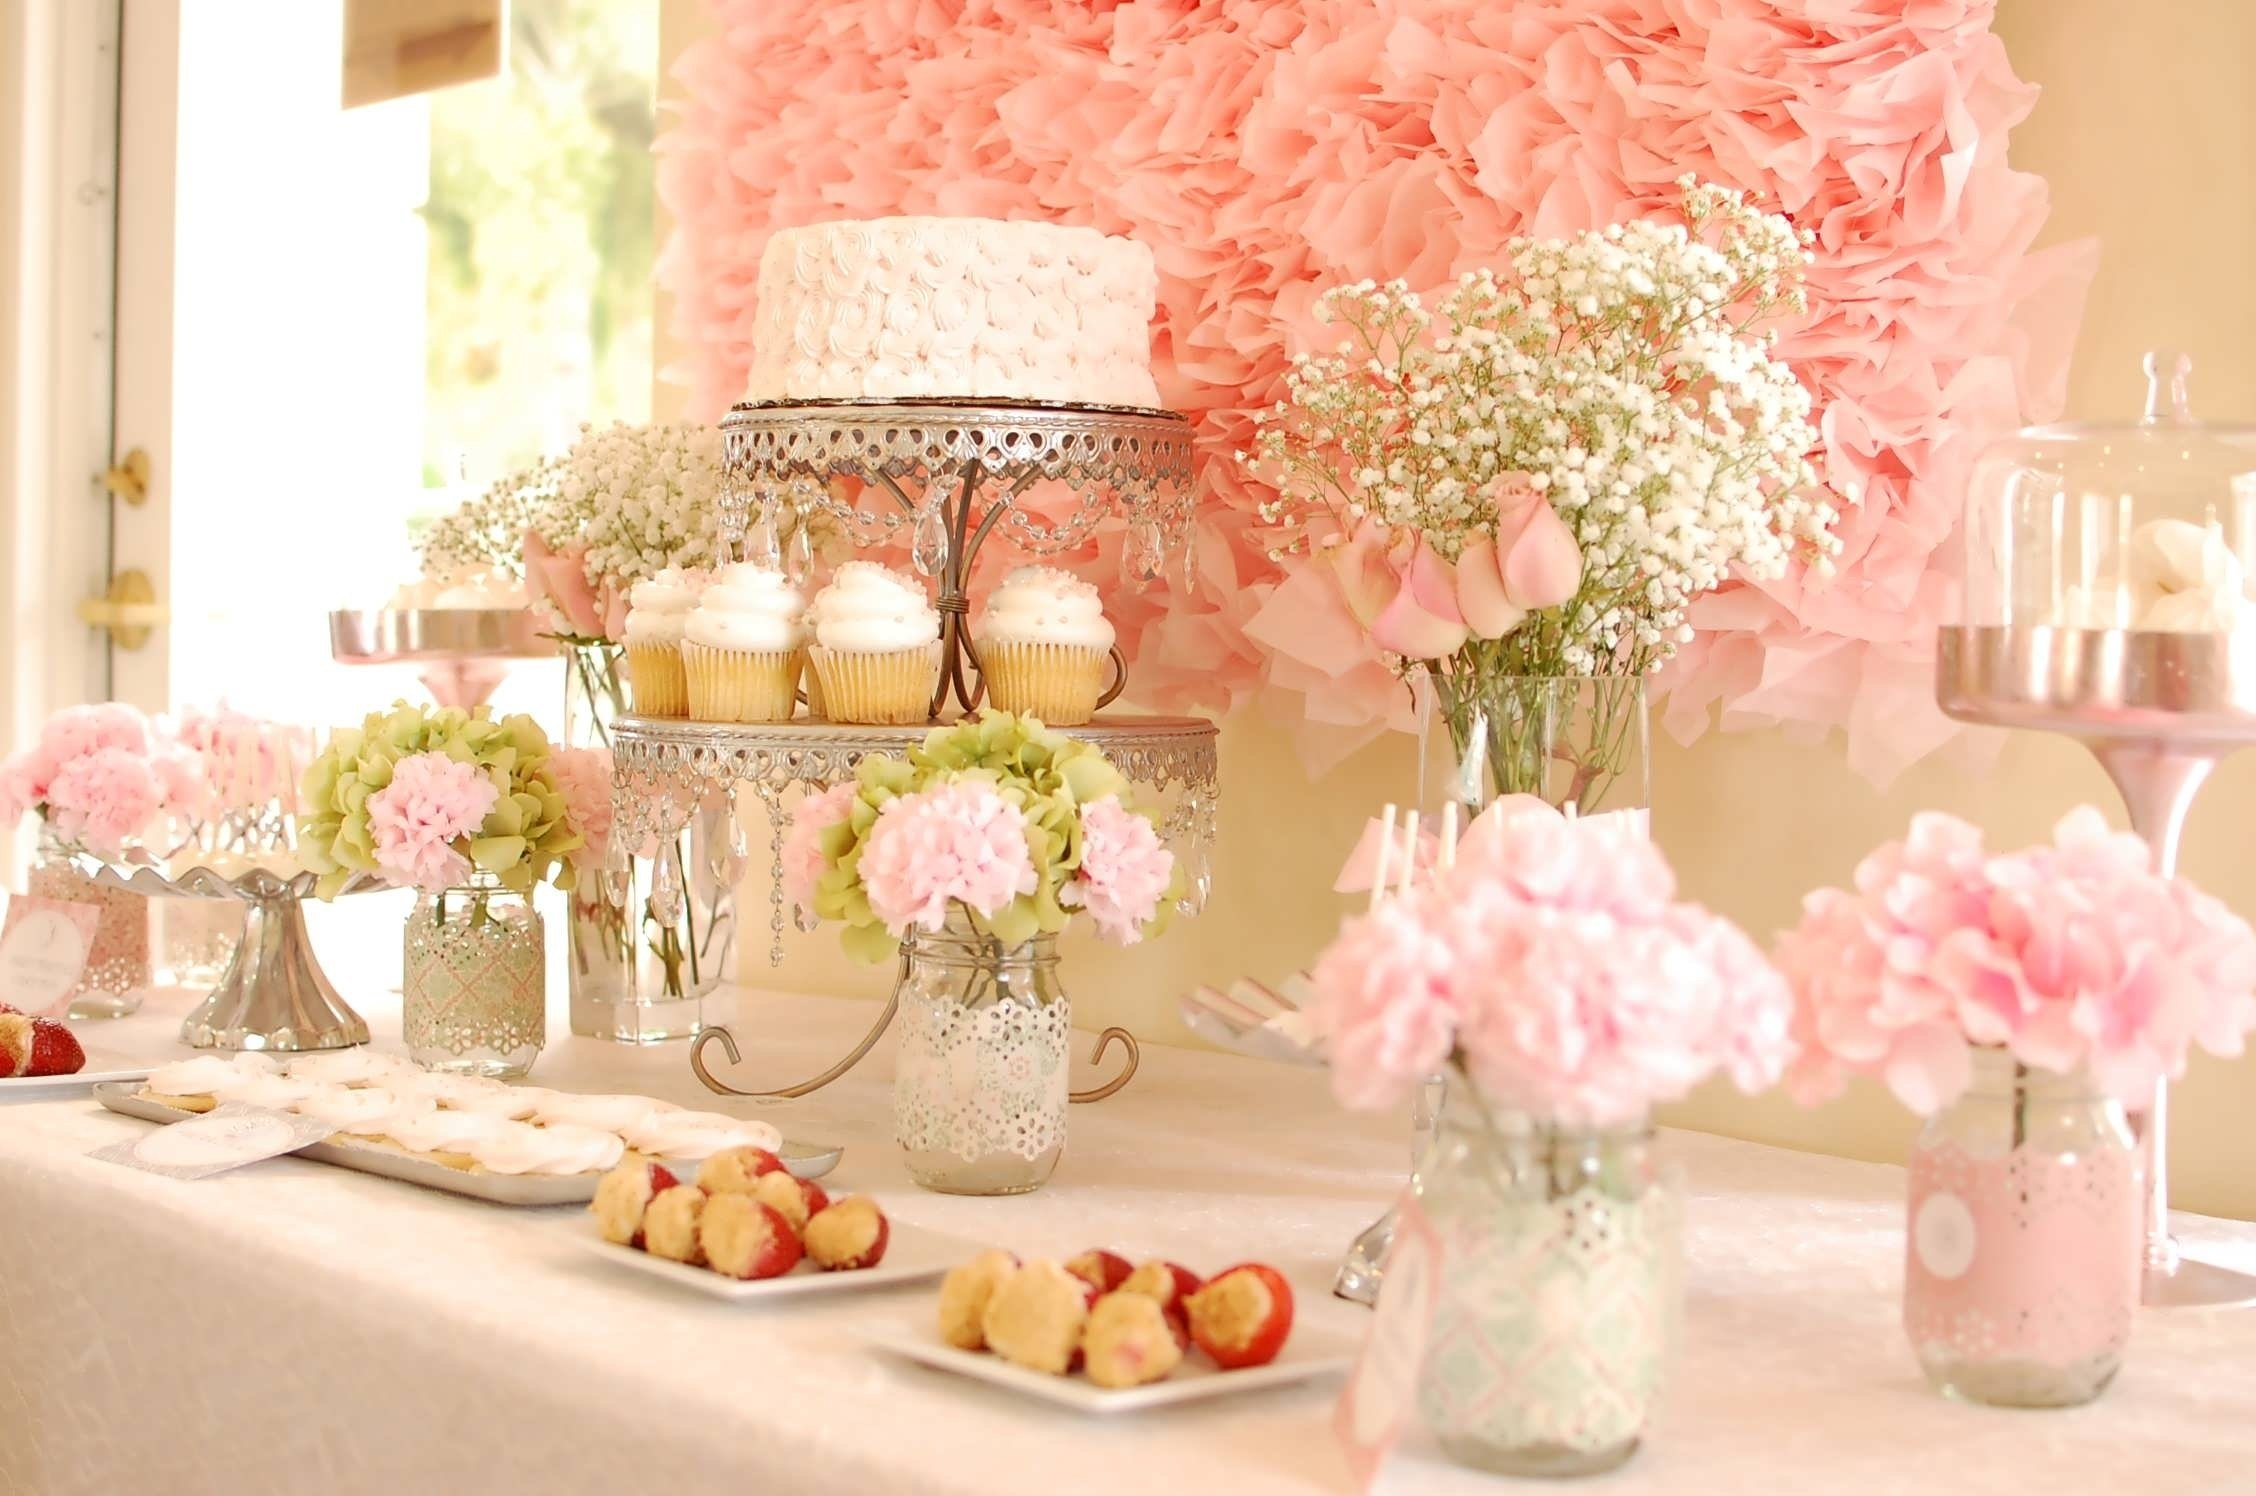 10 Attractive Bridal Shower Ideas On A Budget cheap bridal shower decorations ideas elitflat 2020